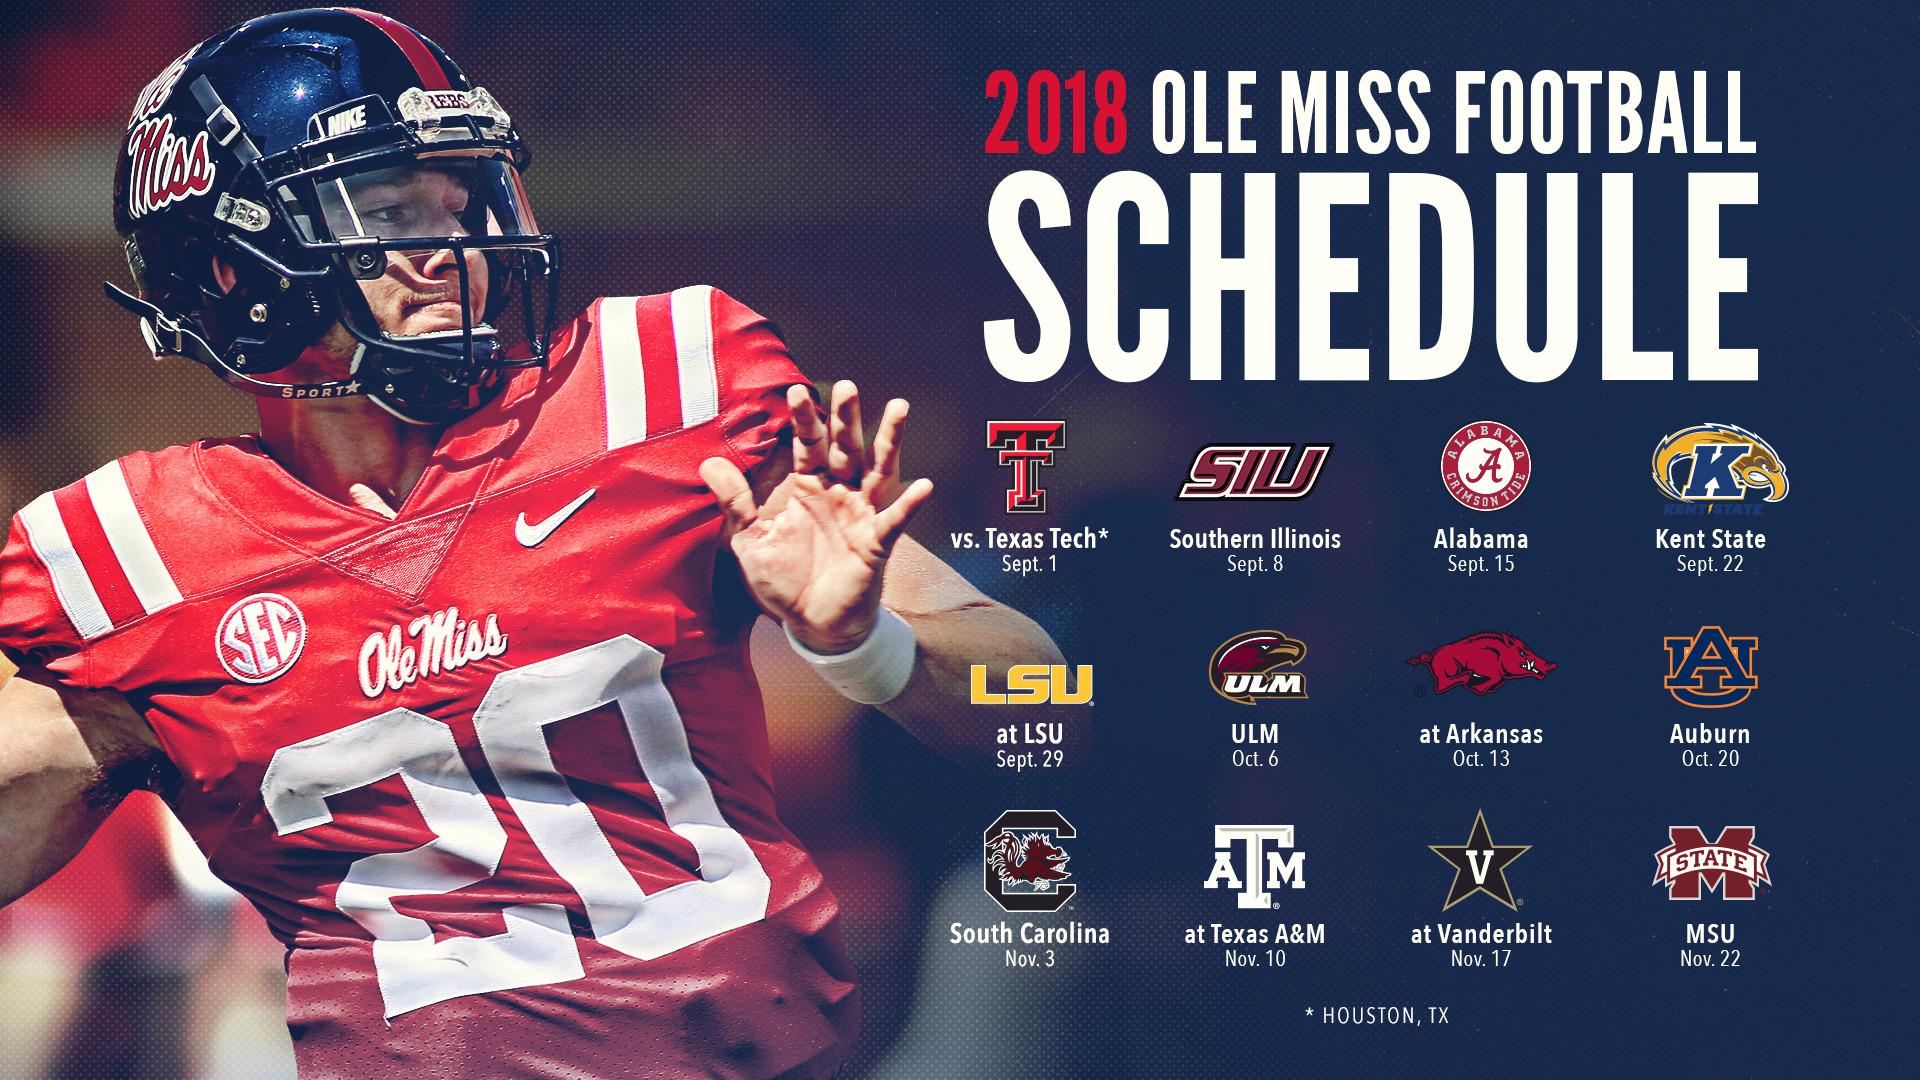 2019 Ole Miss Football Schedule Ole Miss Football Announces 2018 Schedule   Ole Miss Athletics